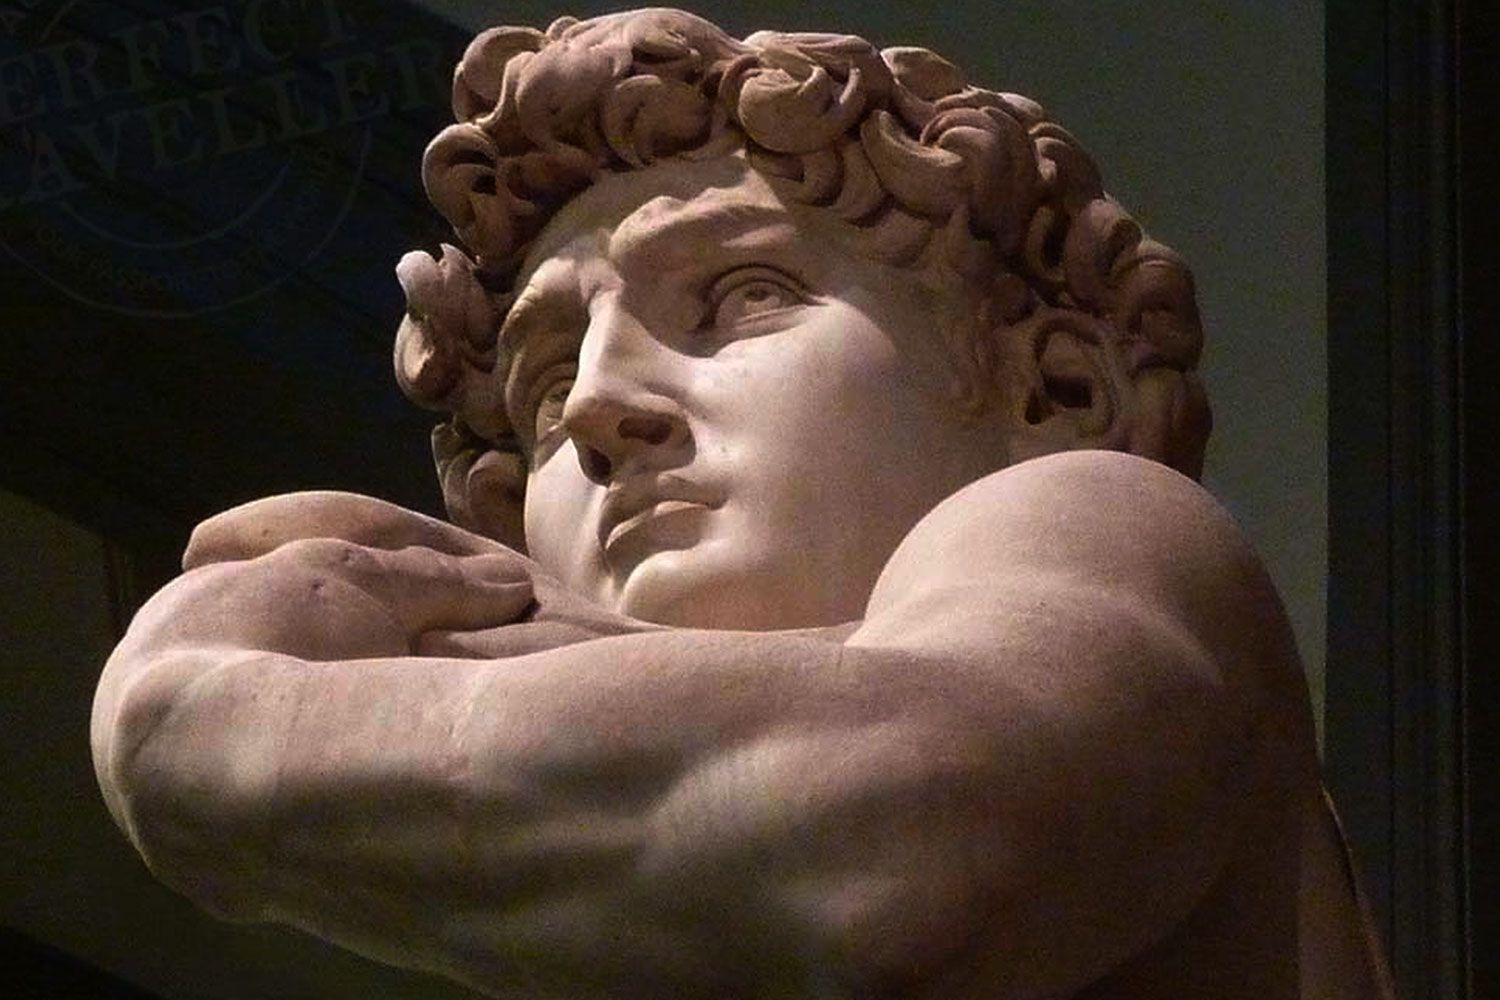 David by Michelangelo in the Accademia in Florence.